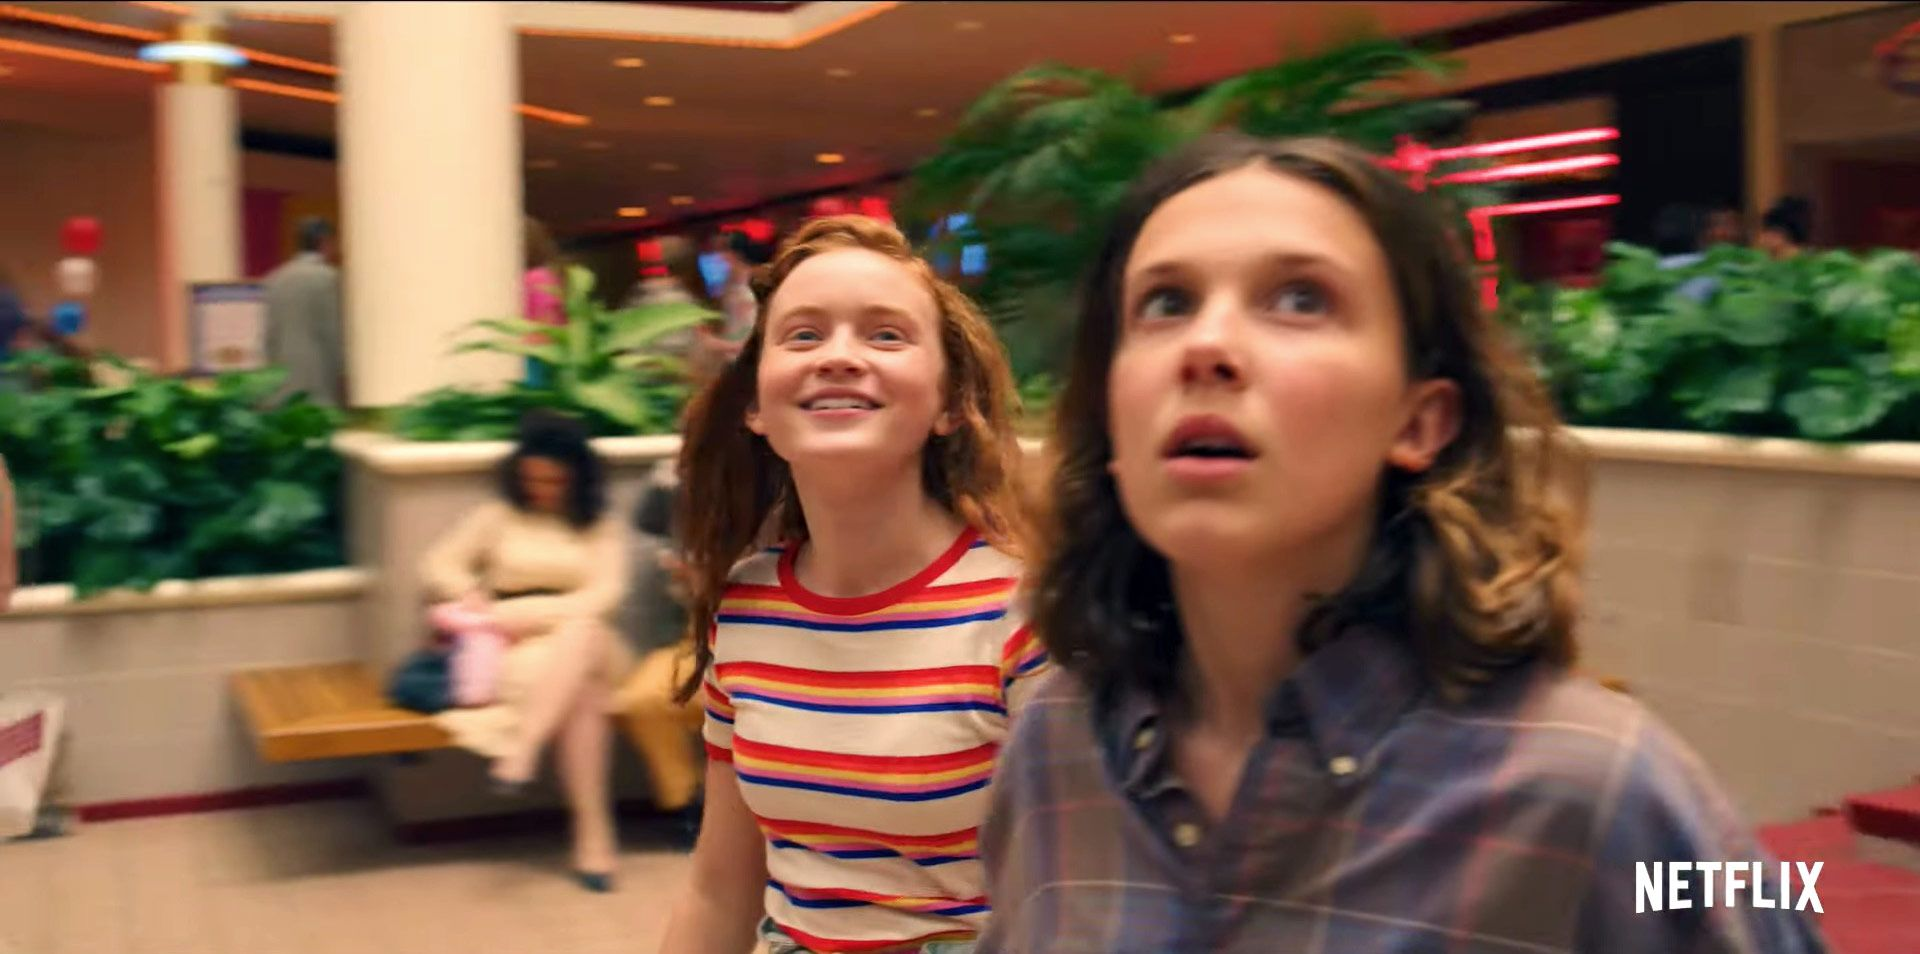 'Stranger Things 3' Promises to Be Funny, Harrowing, and Full of '80s References